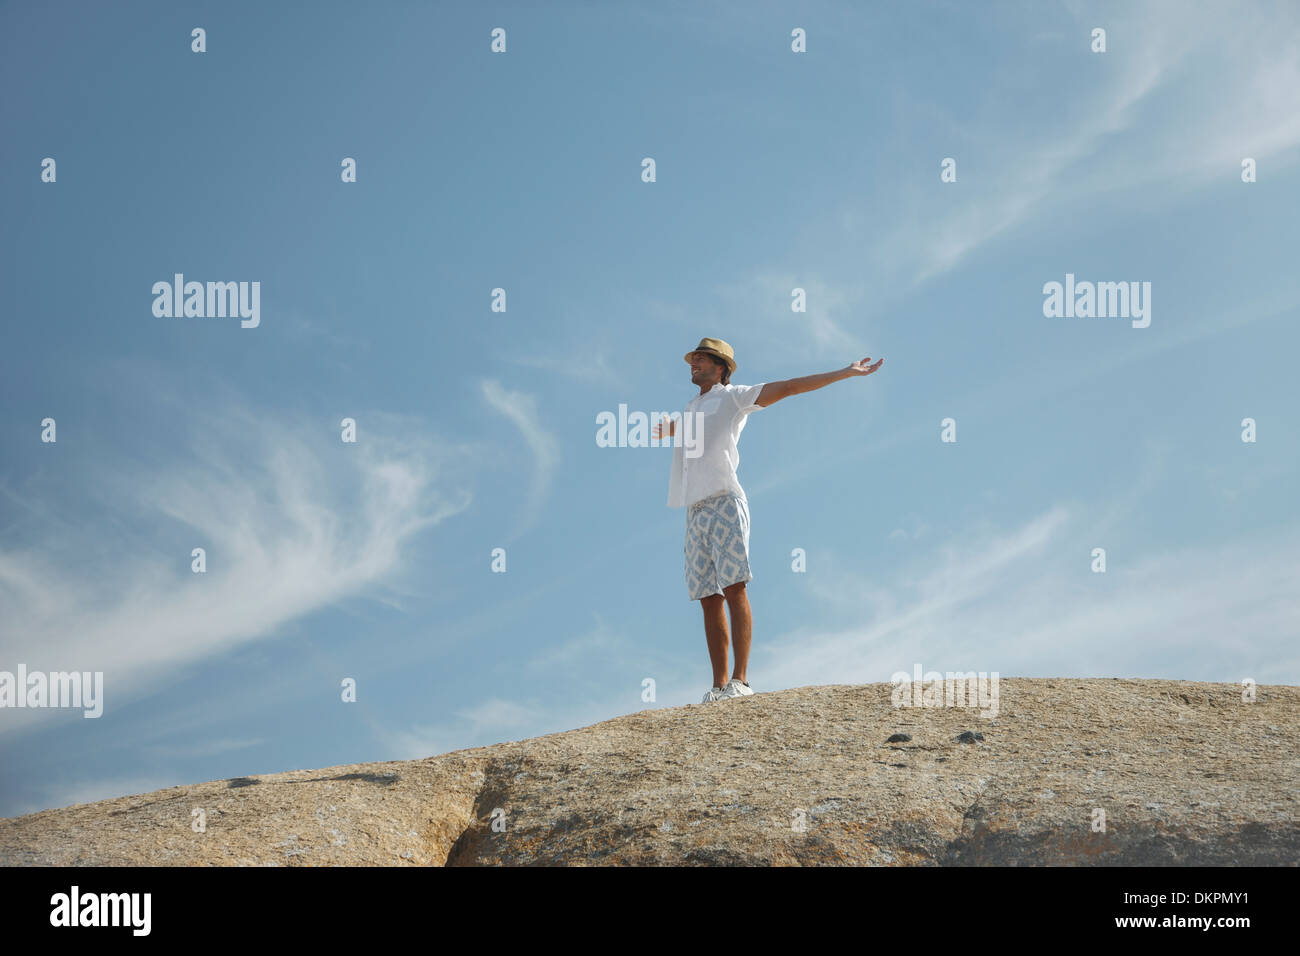 Man standing on rock formation - Stock Image